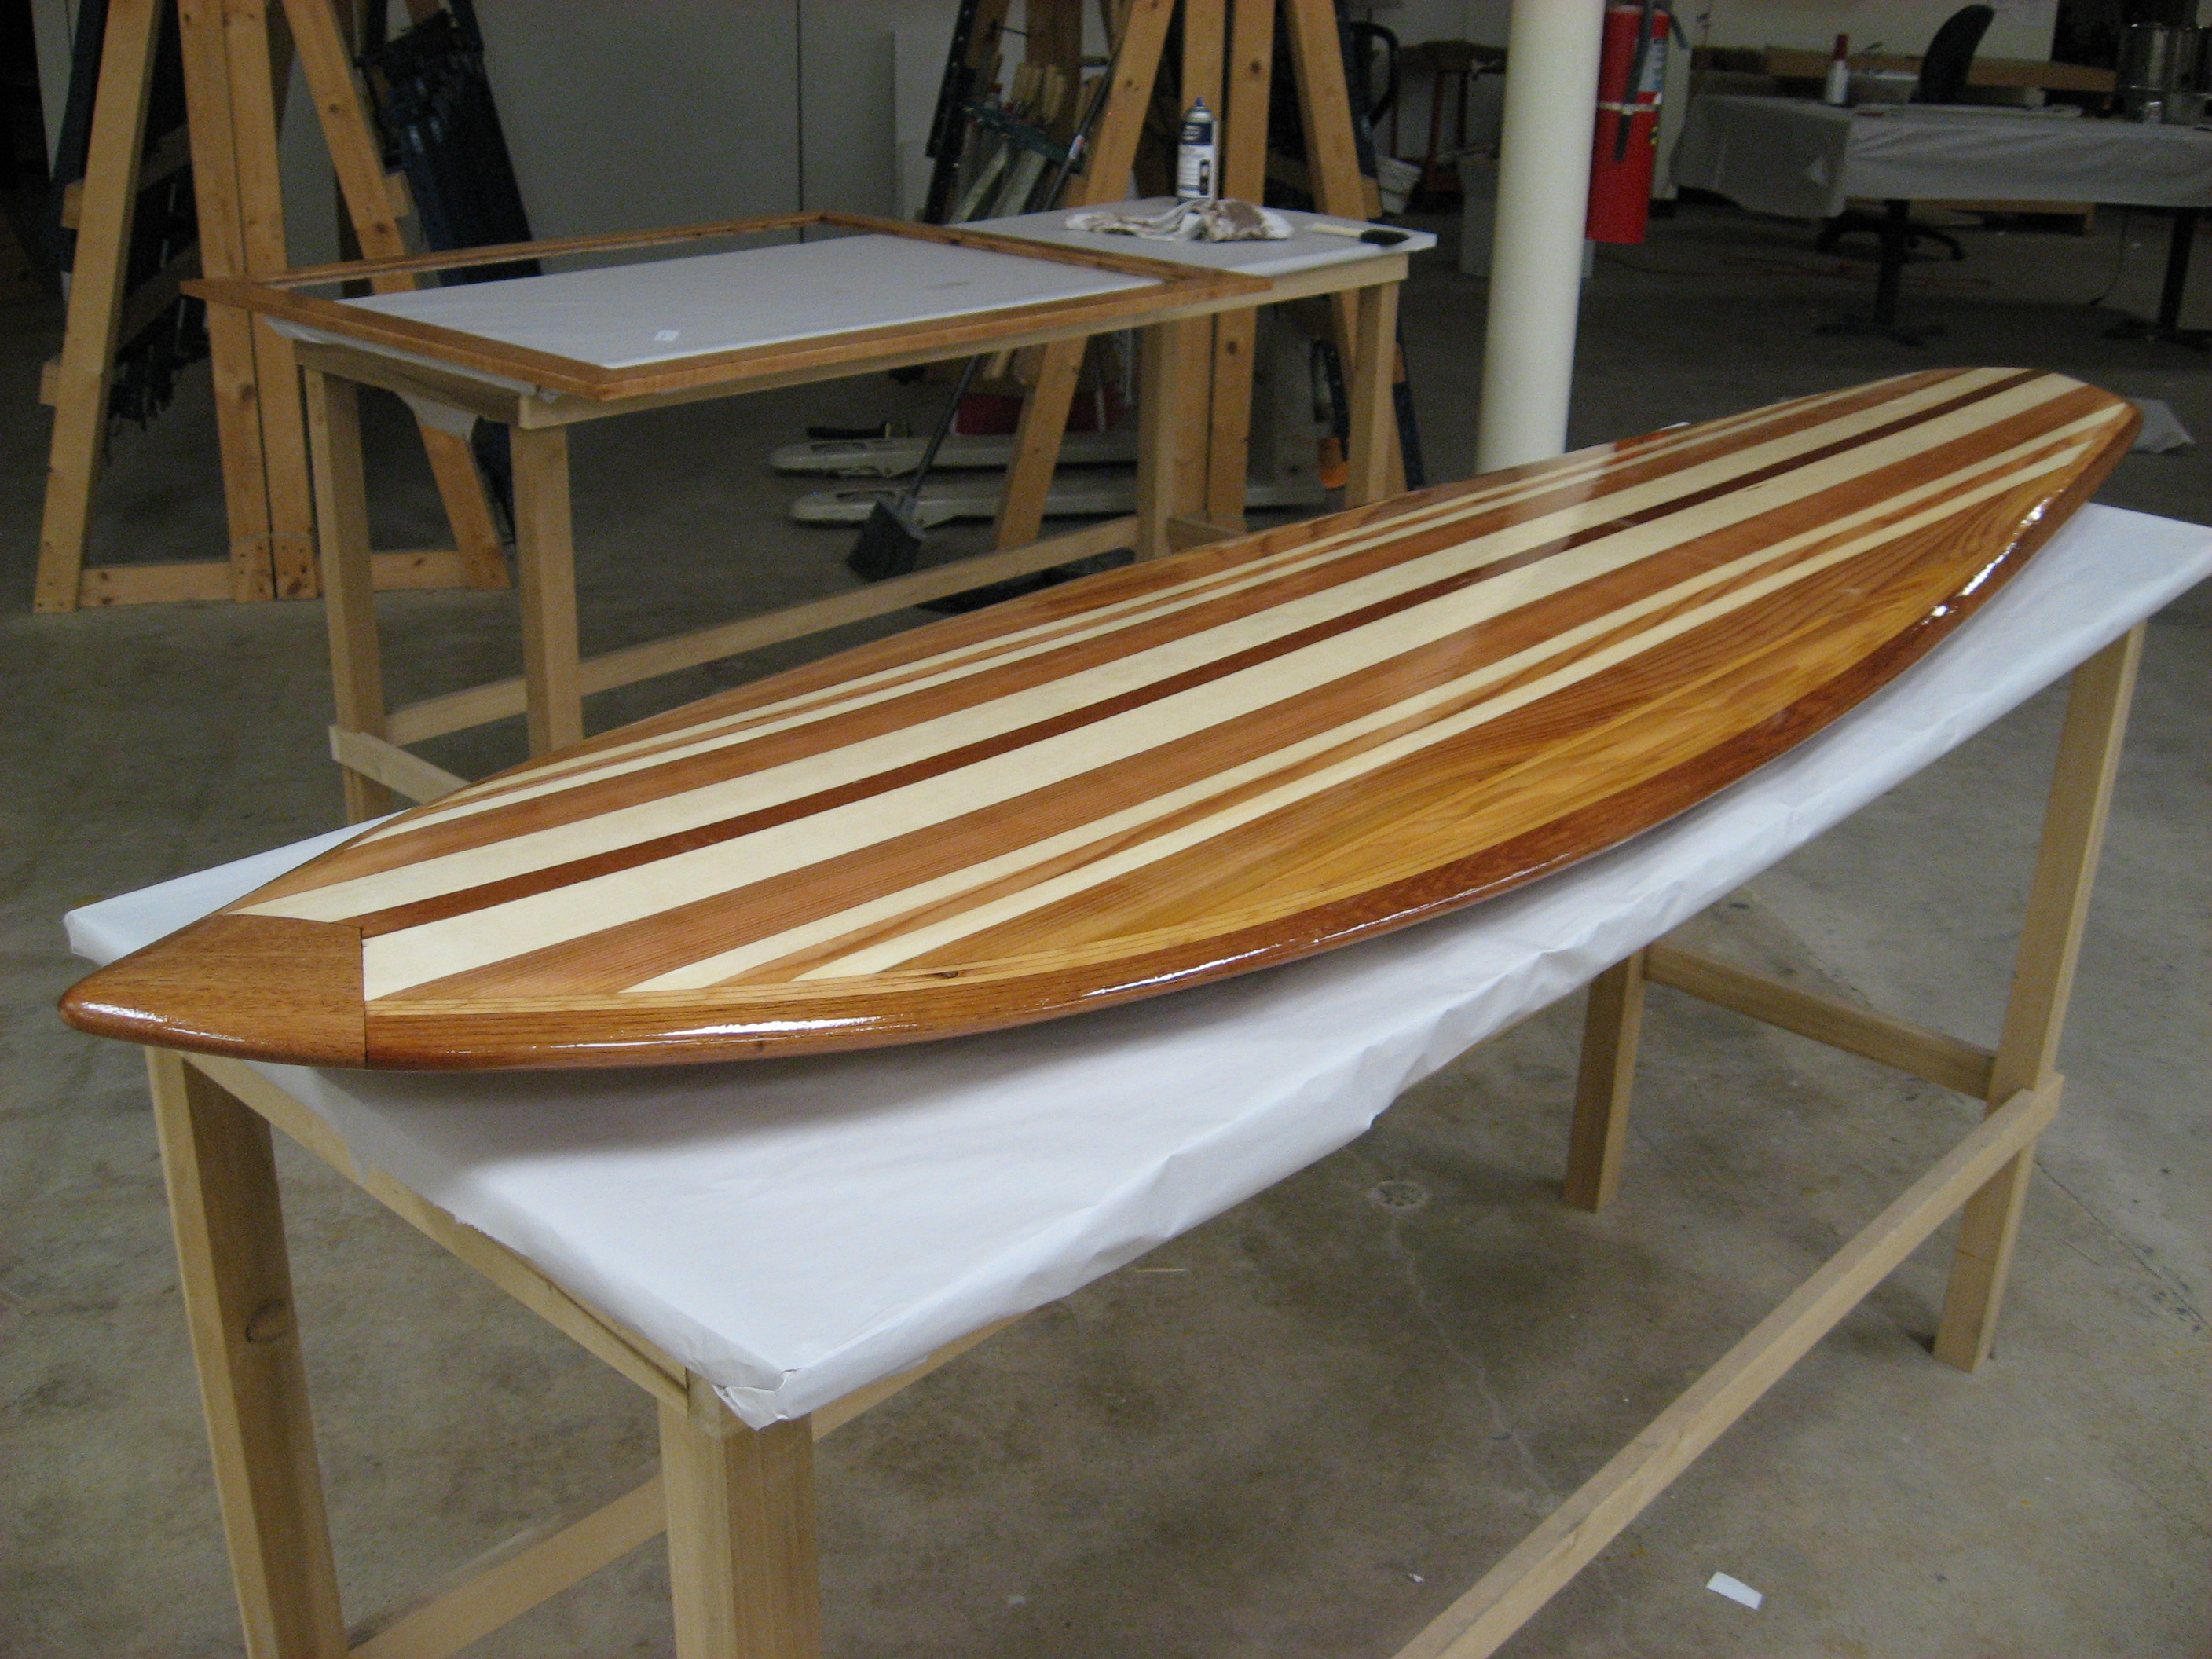 DIY Wooden Surfboard Plans PDF Download wood playhouse kit ...